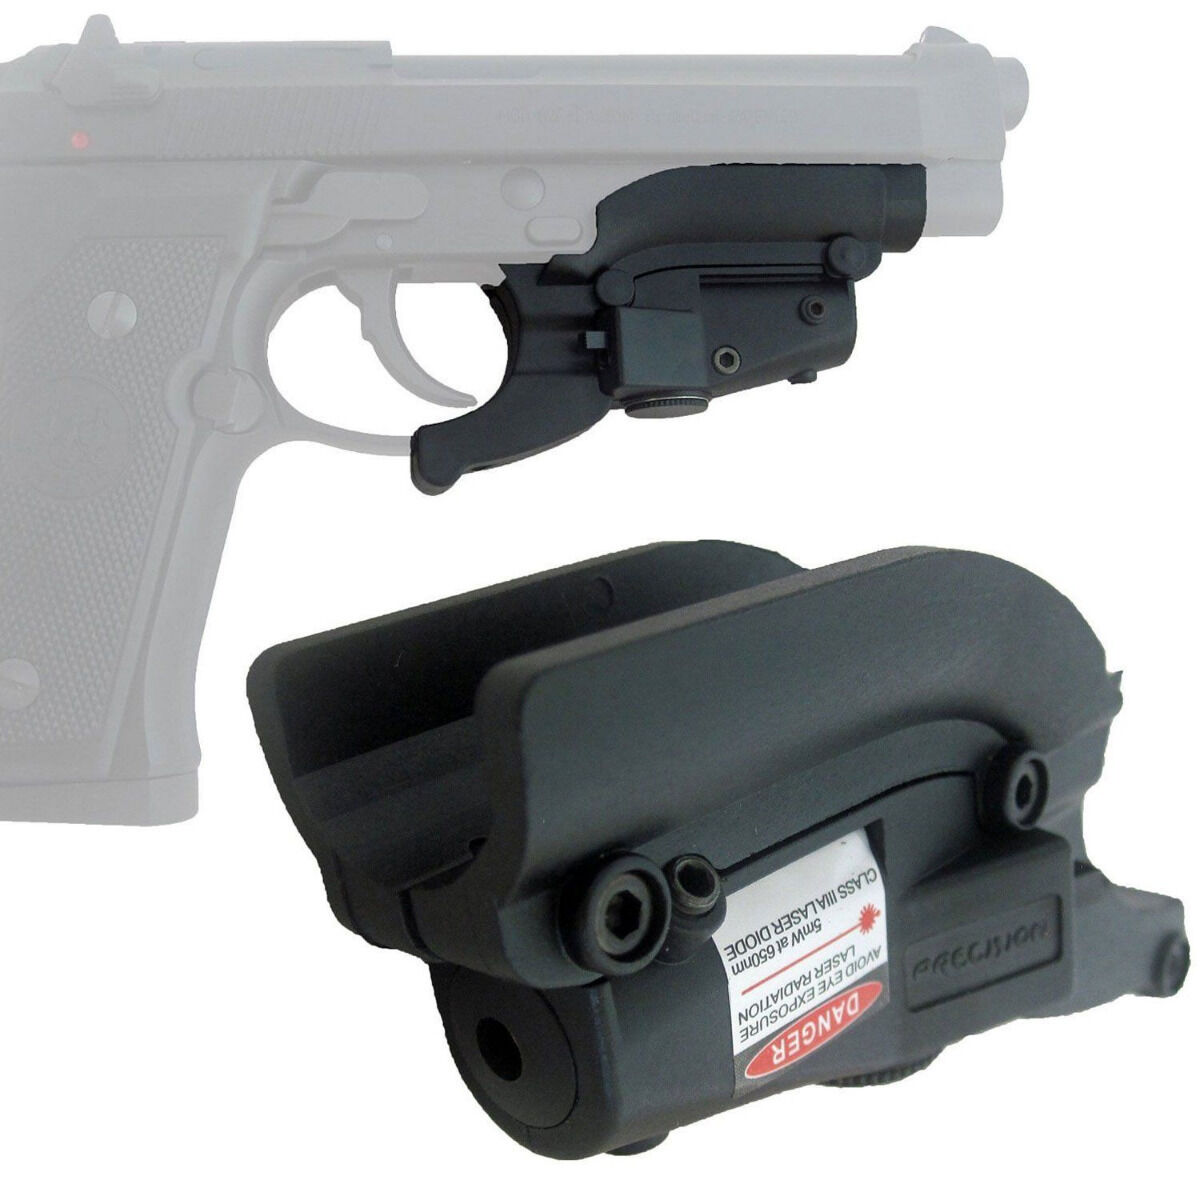 Details about Tactical Red Dot Laser Sight with Lateral Grooves For Beretta  Model 92 96